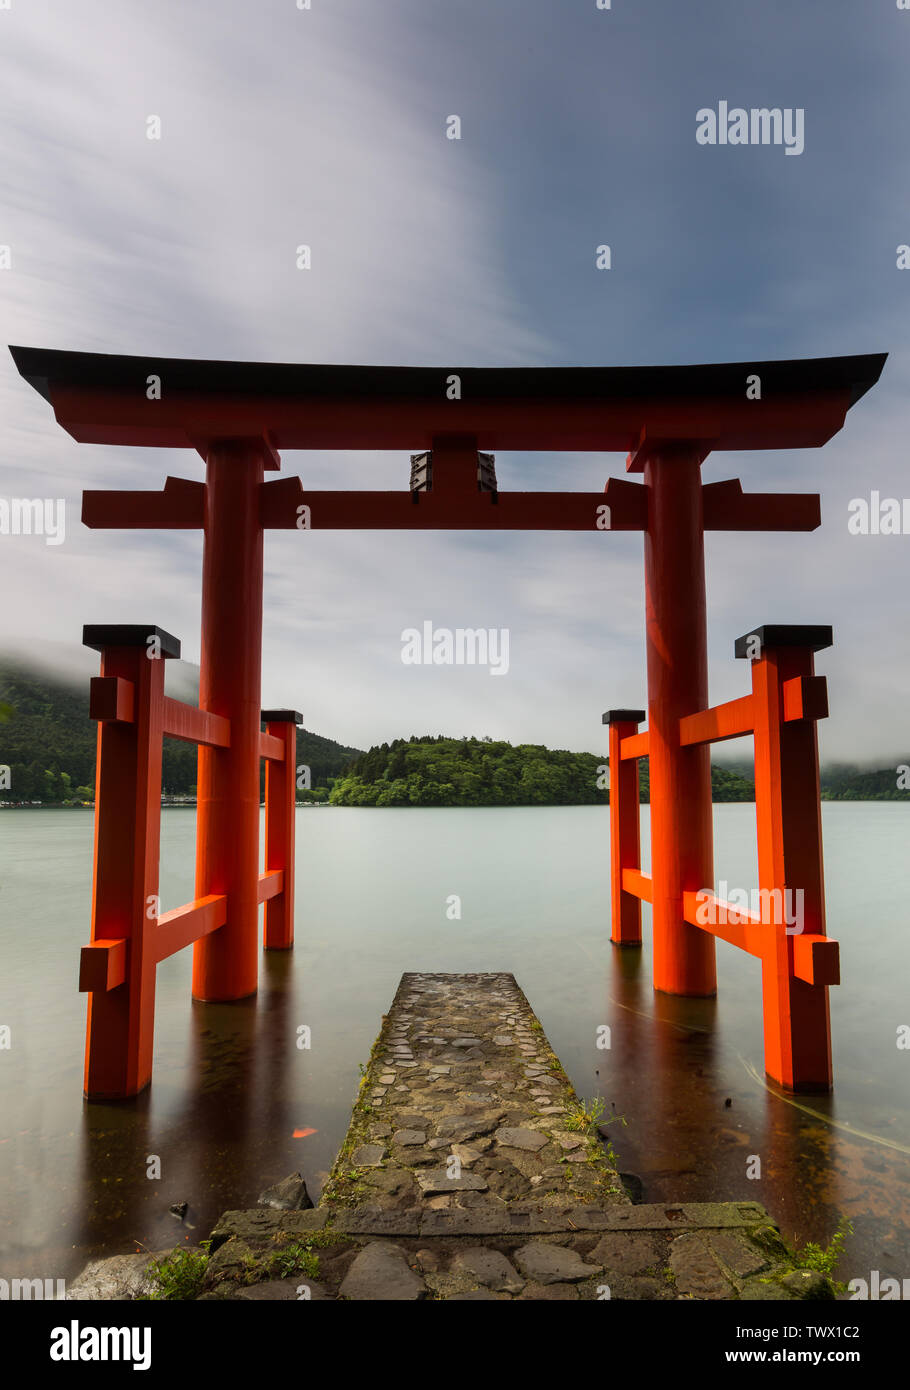 Hakone Shrine at lake Ashi in colorfull ornage during a long exposure with blurred couds in the wind. - Stock Image